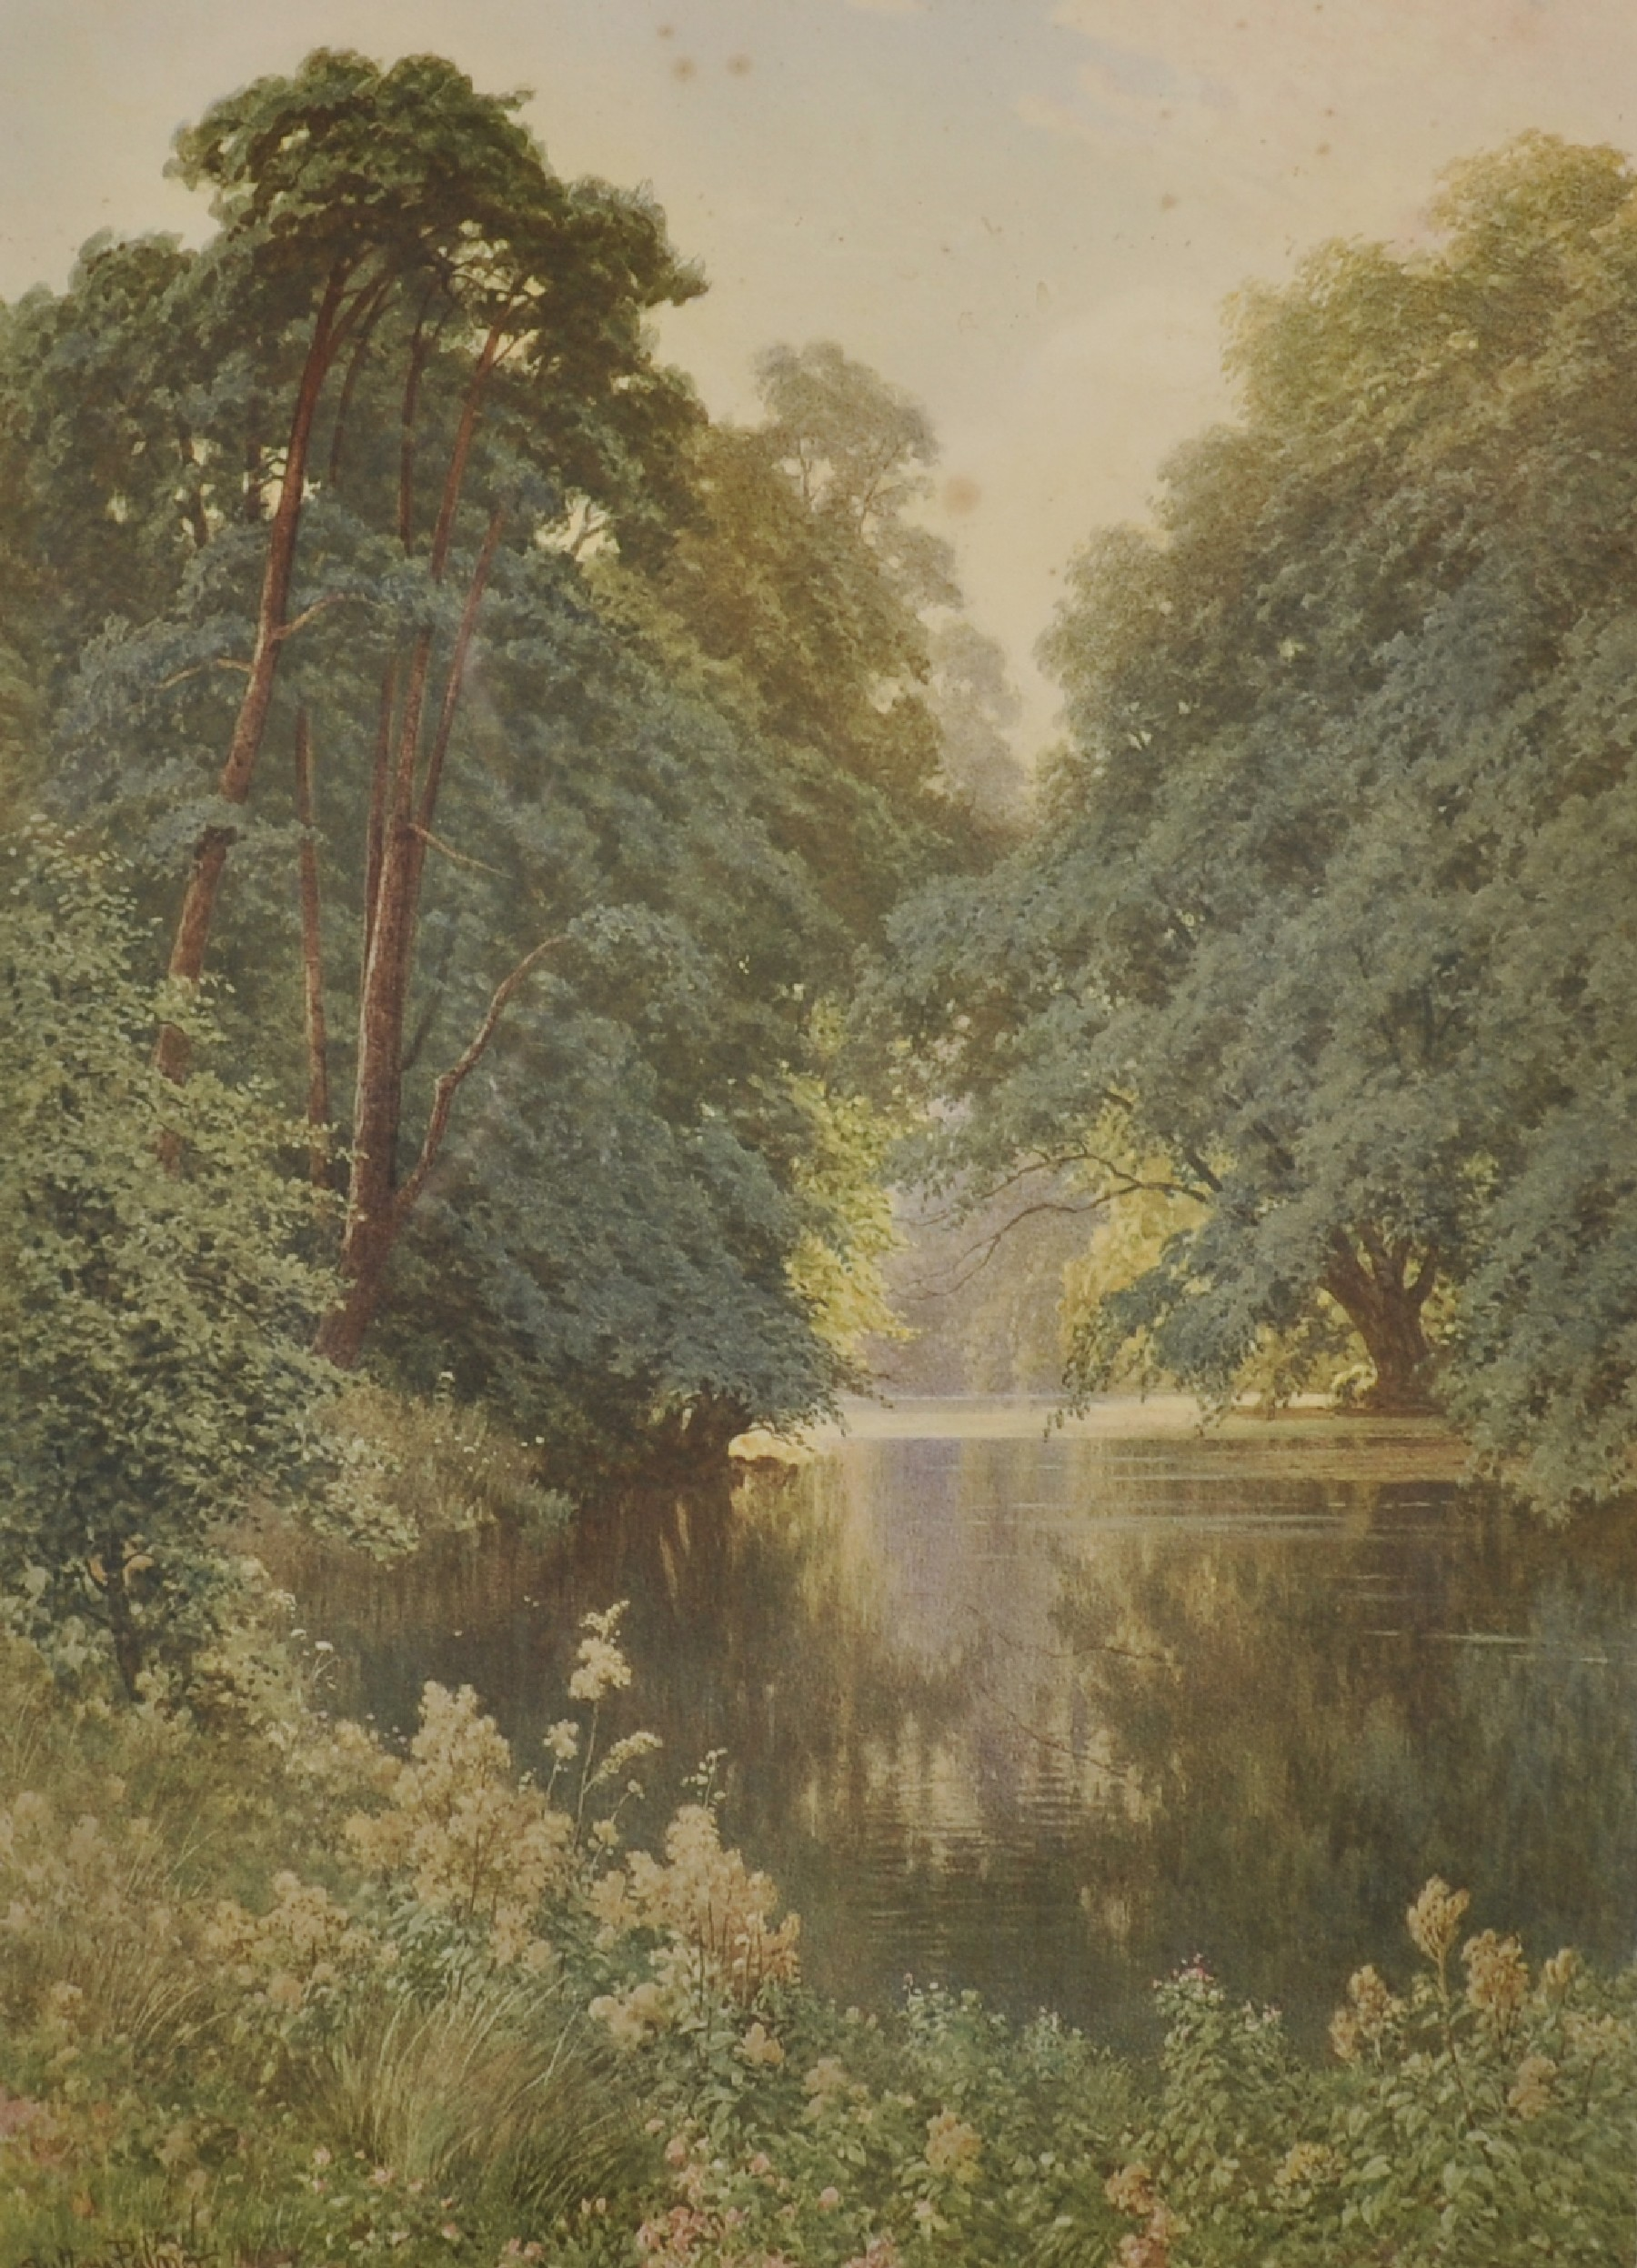 Harry Sutton Palmer (1854-1933) British. A Tranquil River Landscape, Print, Signed in Pencil, with